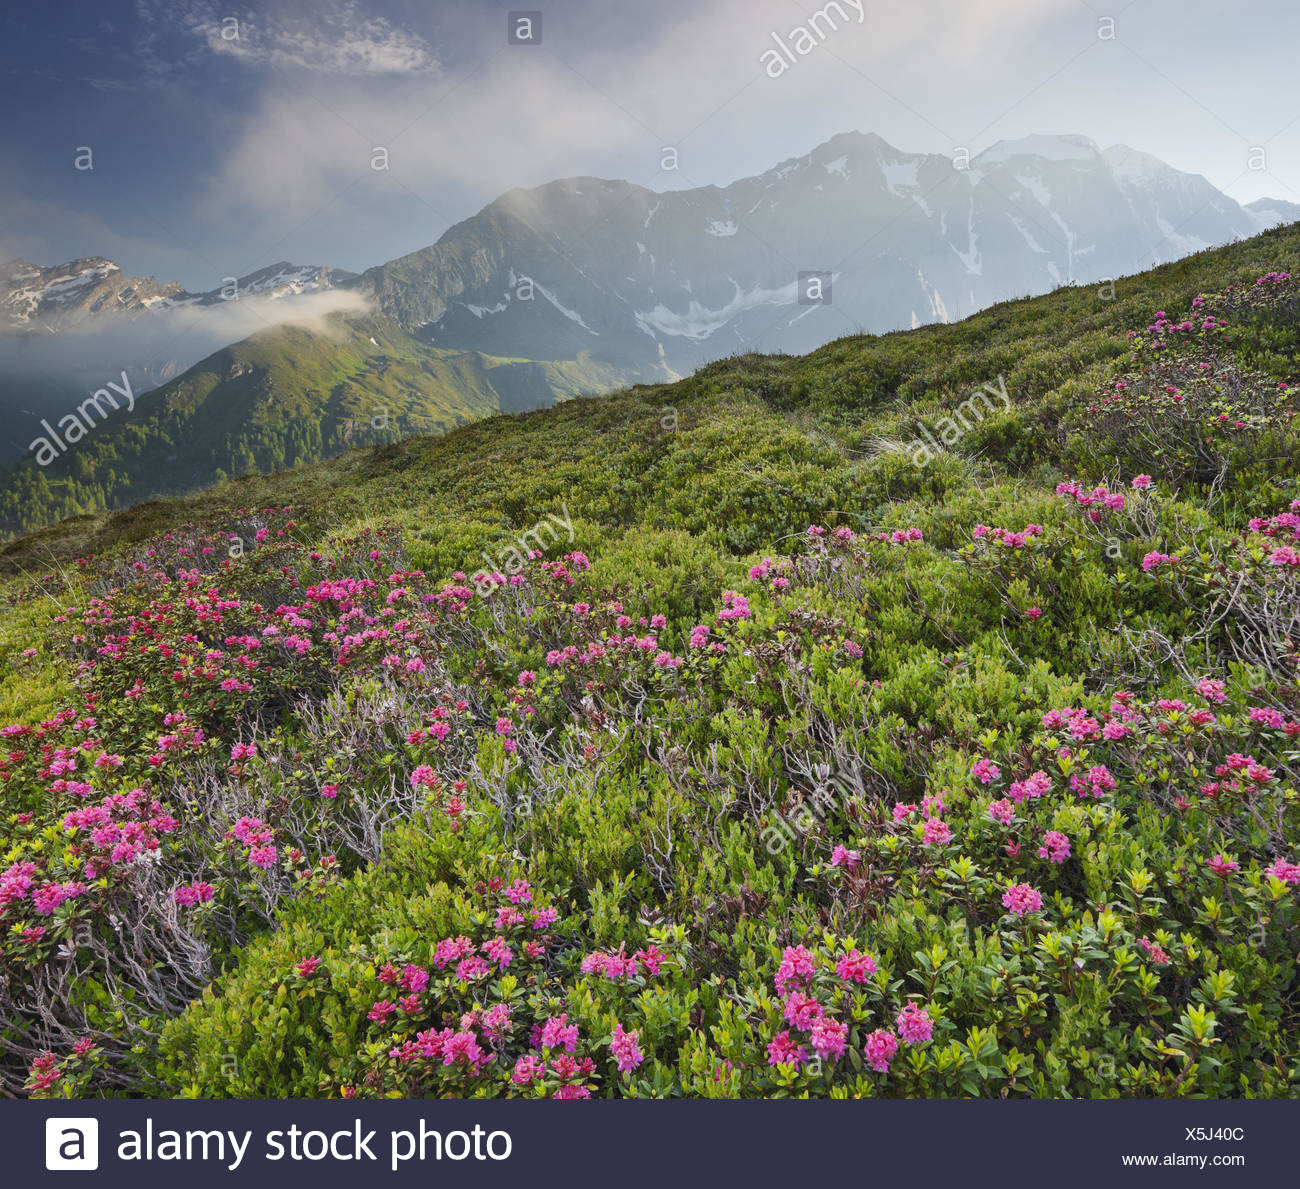 View from Oberberg against Hochfeiler, 3510 m, alpine rose, Pfitscher Tal (valley), South Tyrol, Italy, Stock Photo